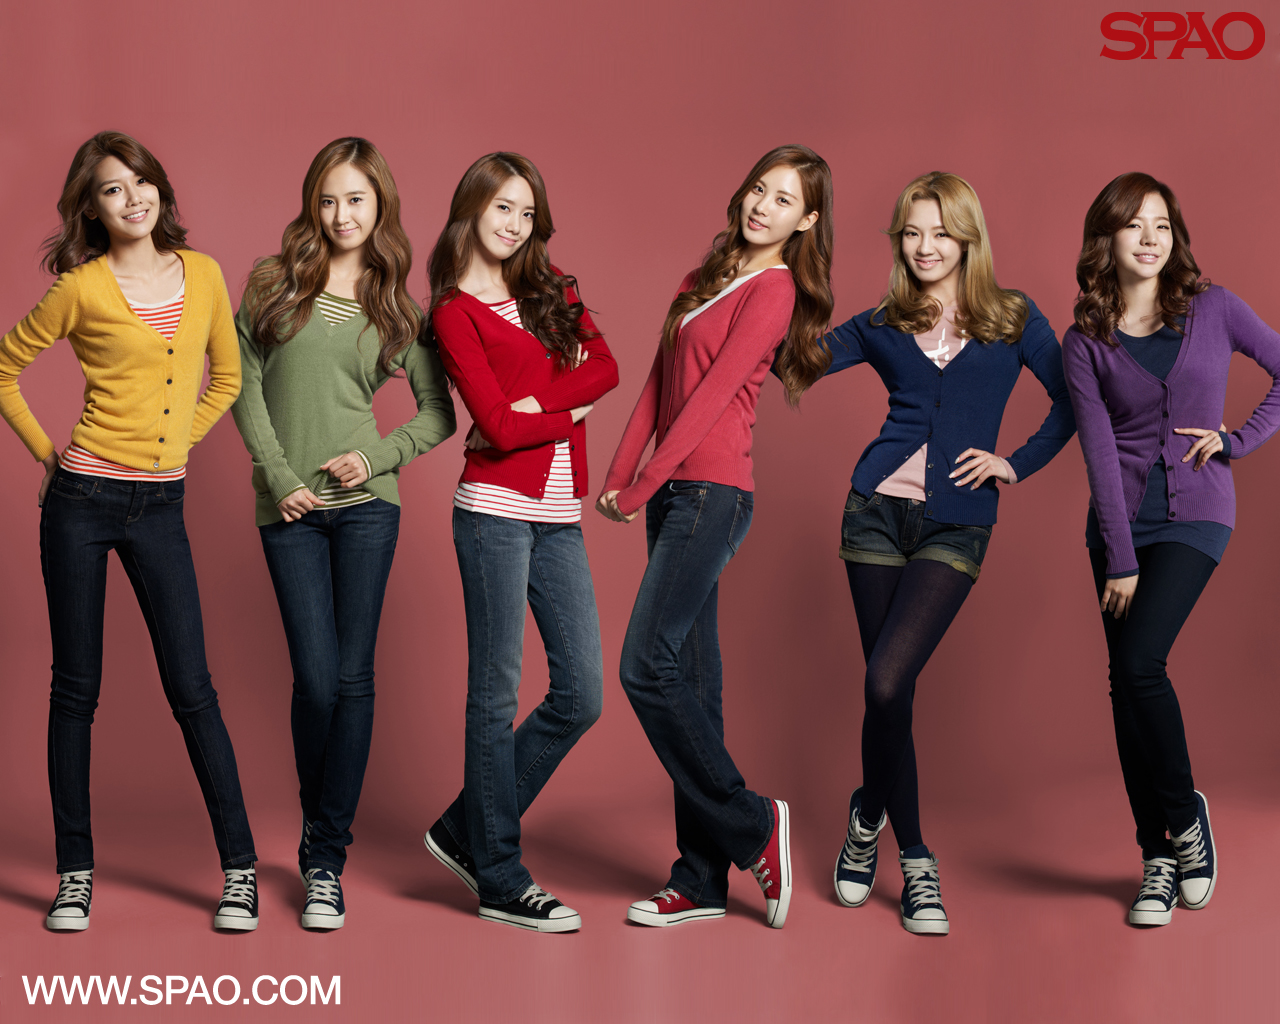 Pictures Super Junior And Snsd Released New Wallpapers For Spao